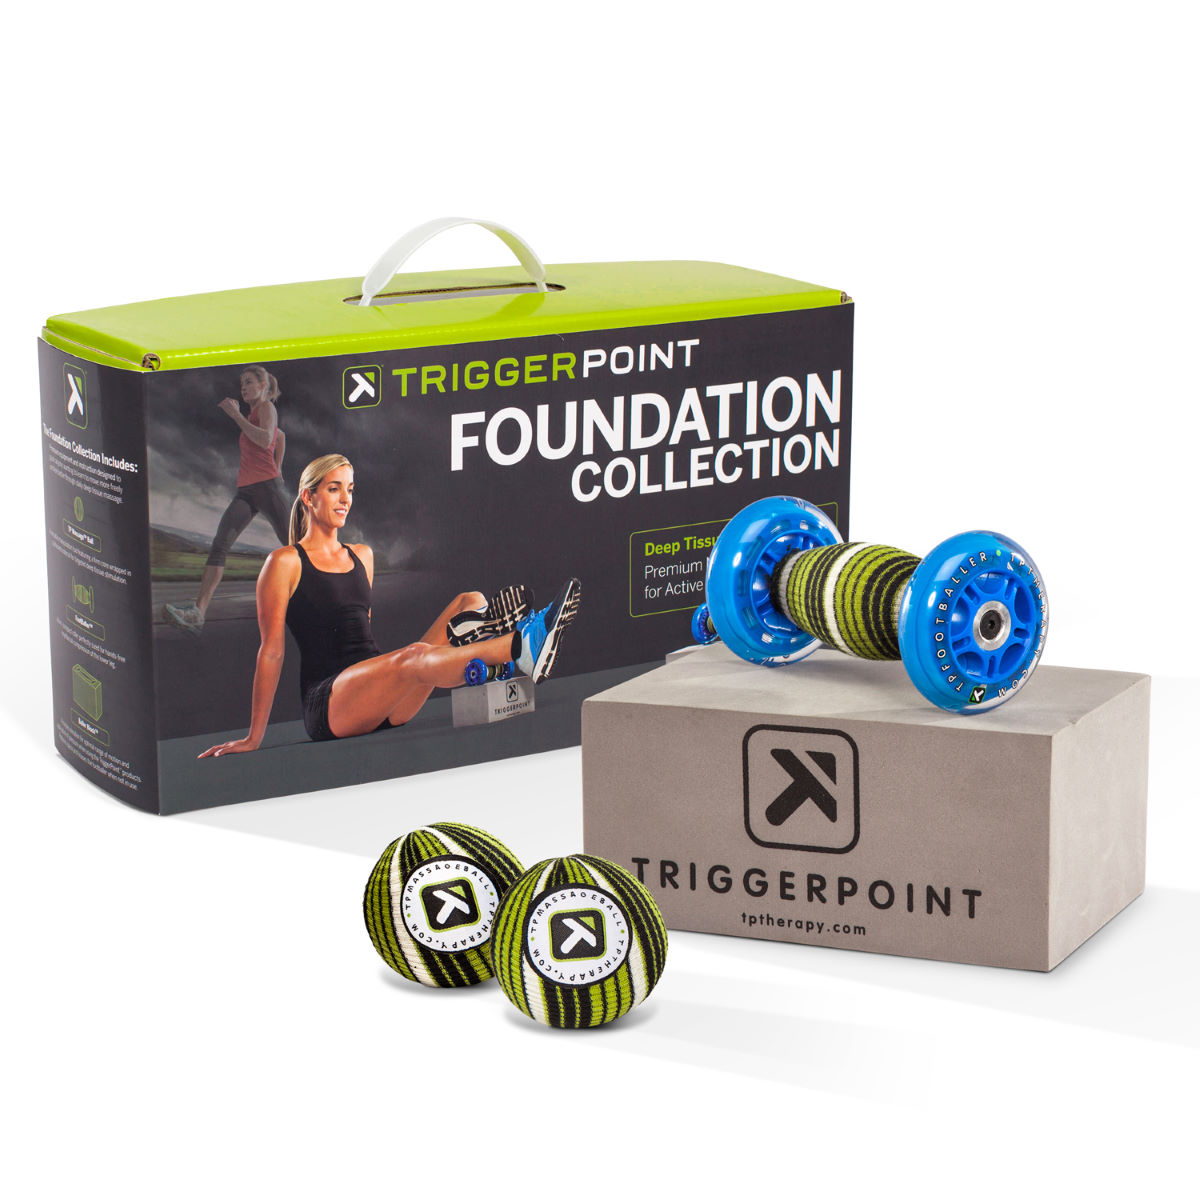 Image of Kit Trigger Point Foundation - 38cm x 15cm x 20cm Assorted